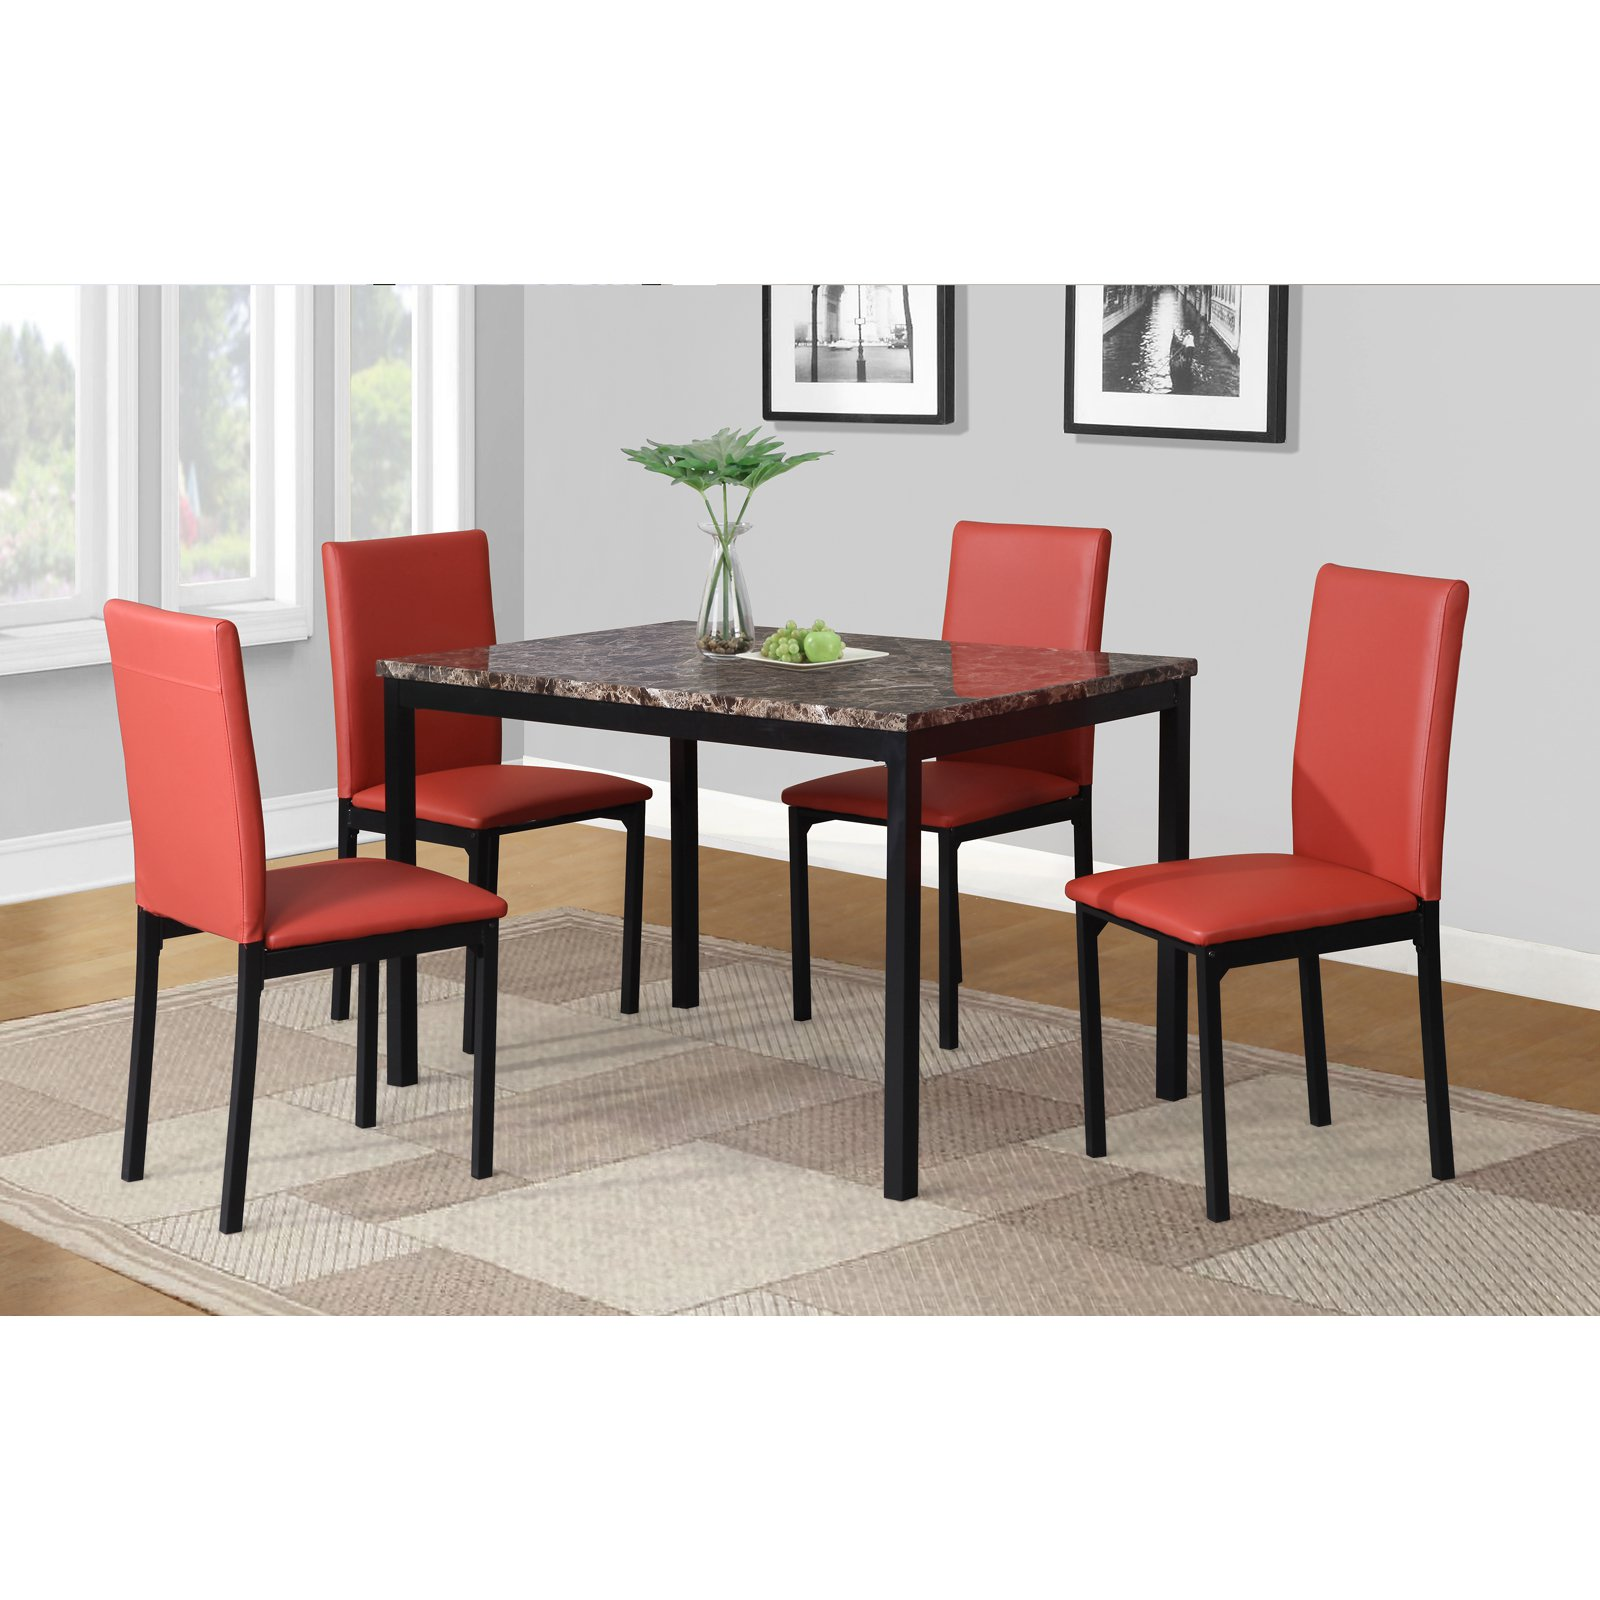 Roundhill Furniture Citico 5 Piece Metal Faux Marble Dining Set